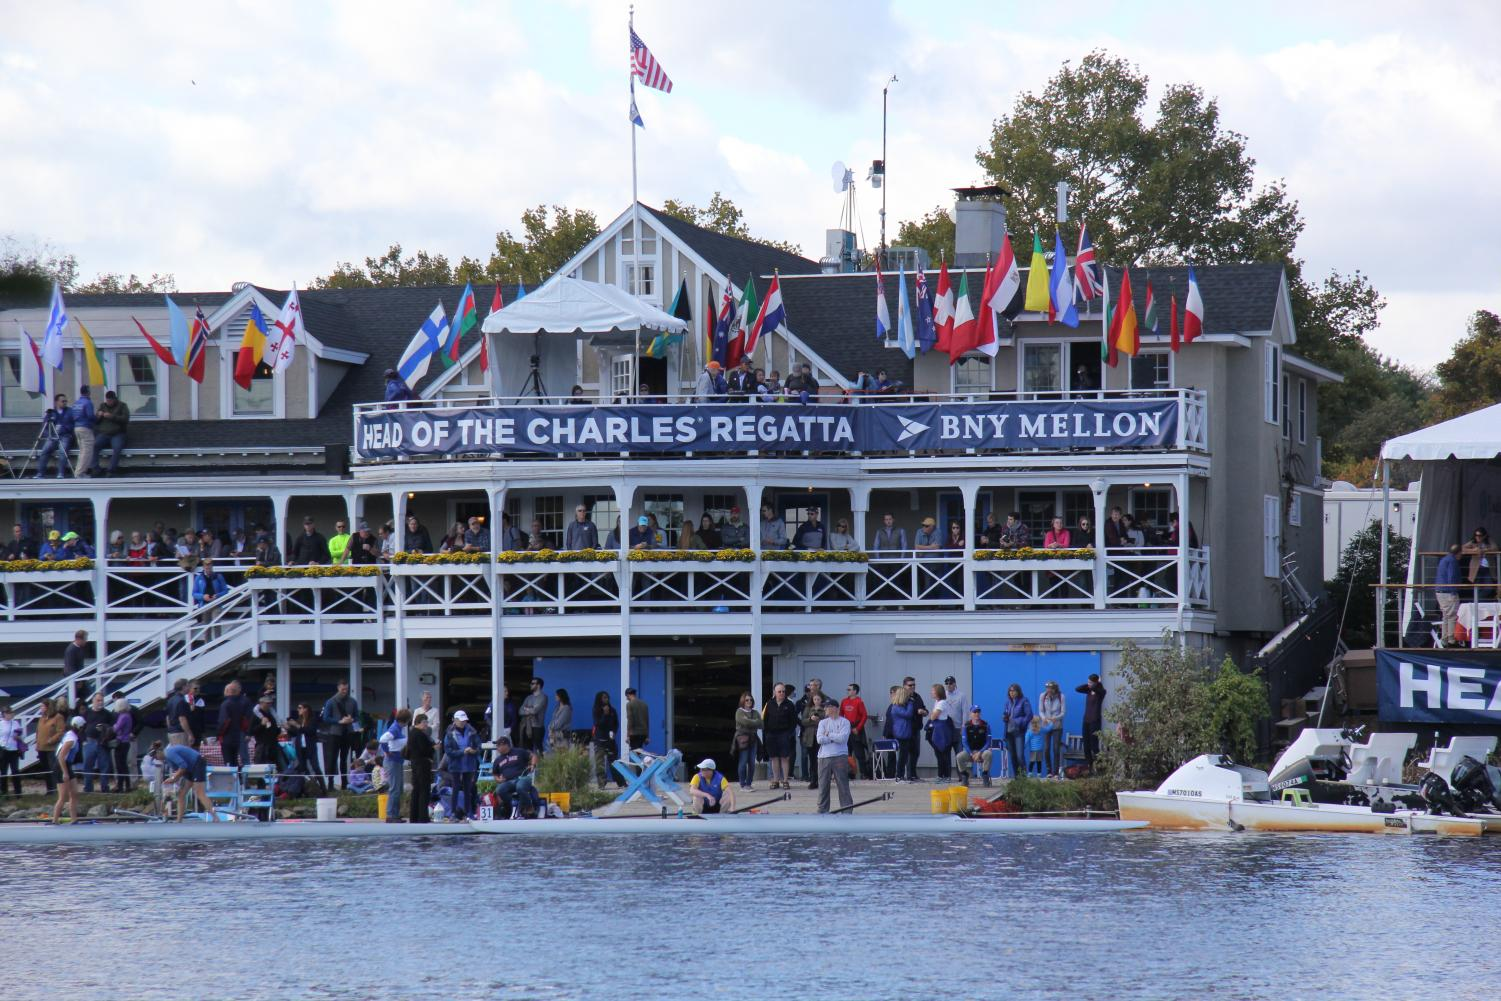 The BNY Mellon Boathouse was crowded with rowers, coaches and fans during the Head of the Charles Regatta on the Charles River in Boston on Oct. 20. For two days, thousands of elite rowers sprinted by the boathouse with the finish line in sight. Photo by Sarah Slaten.